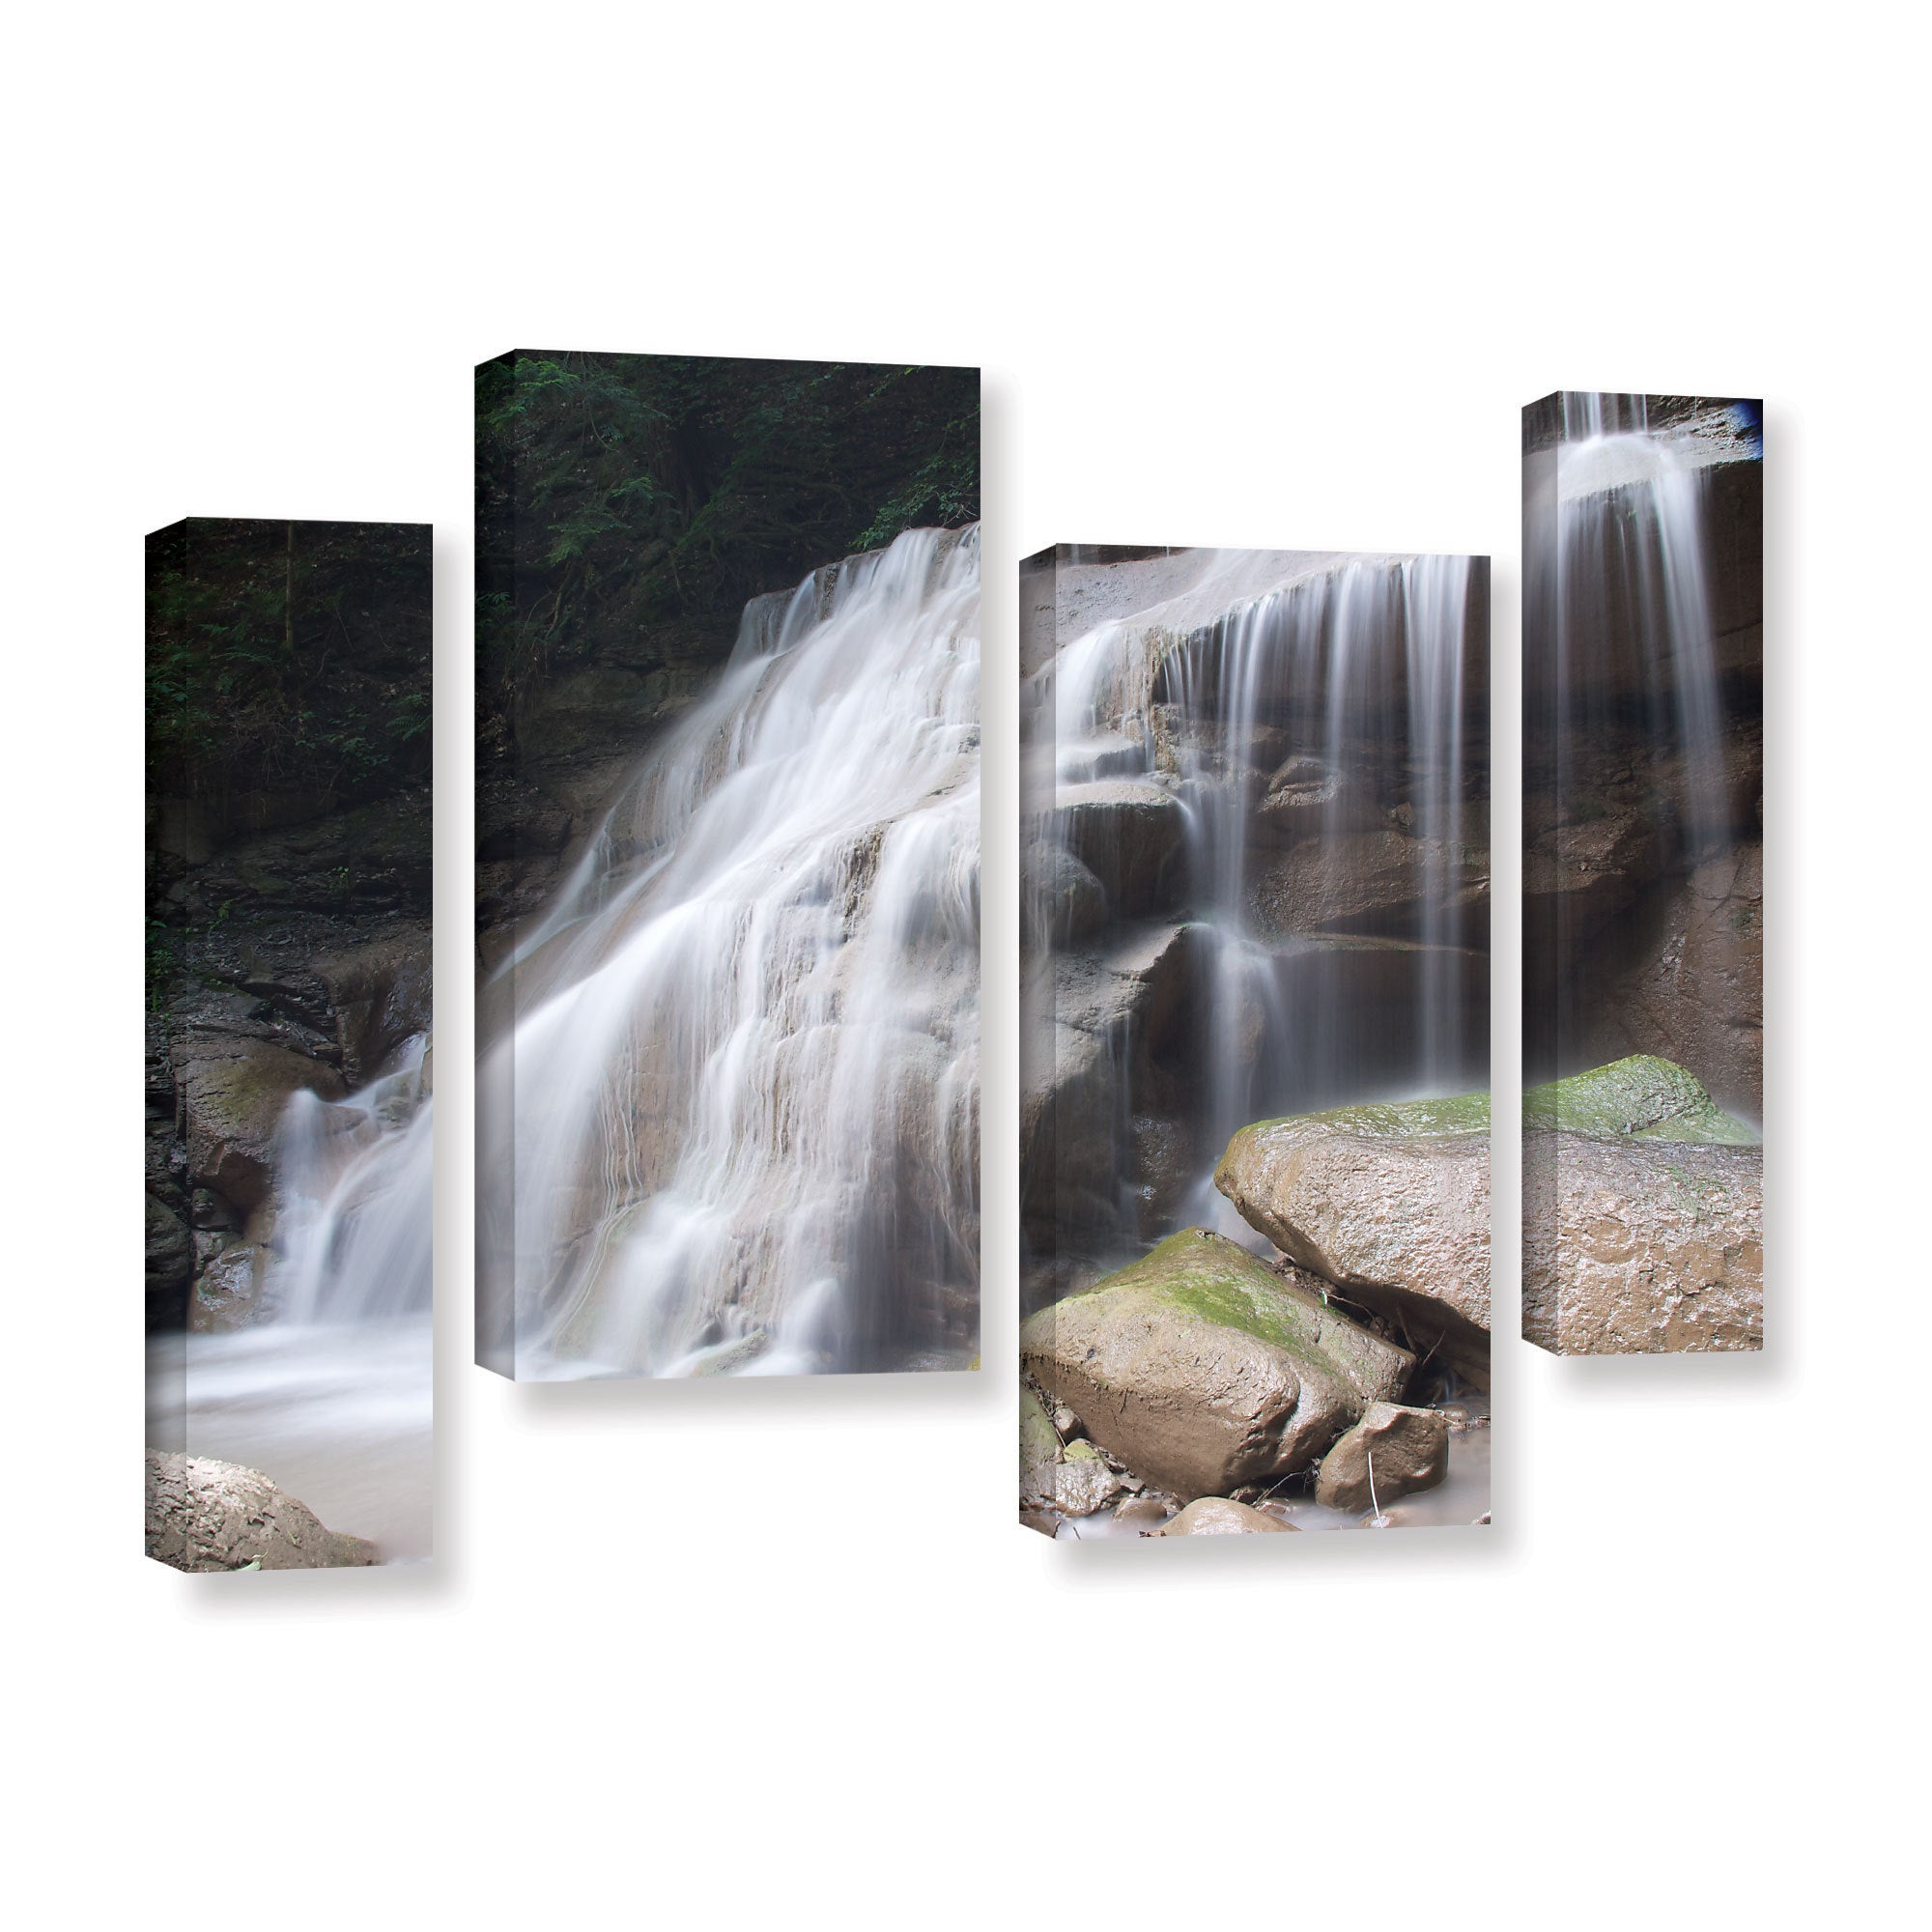 Artwall Dan Wilson S New York Rattlesnake Gulf Waterfall 4 Piece Gallery Wrapped Canvas Staggered Set Multi On Sale Overstock 11370229